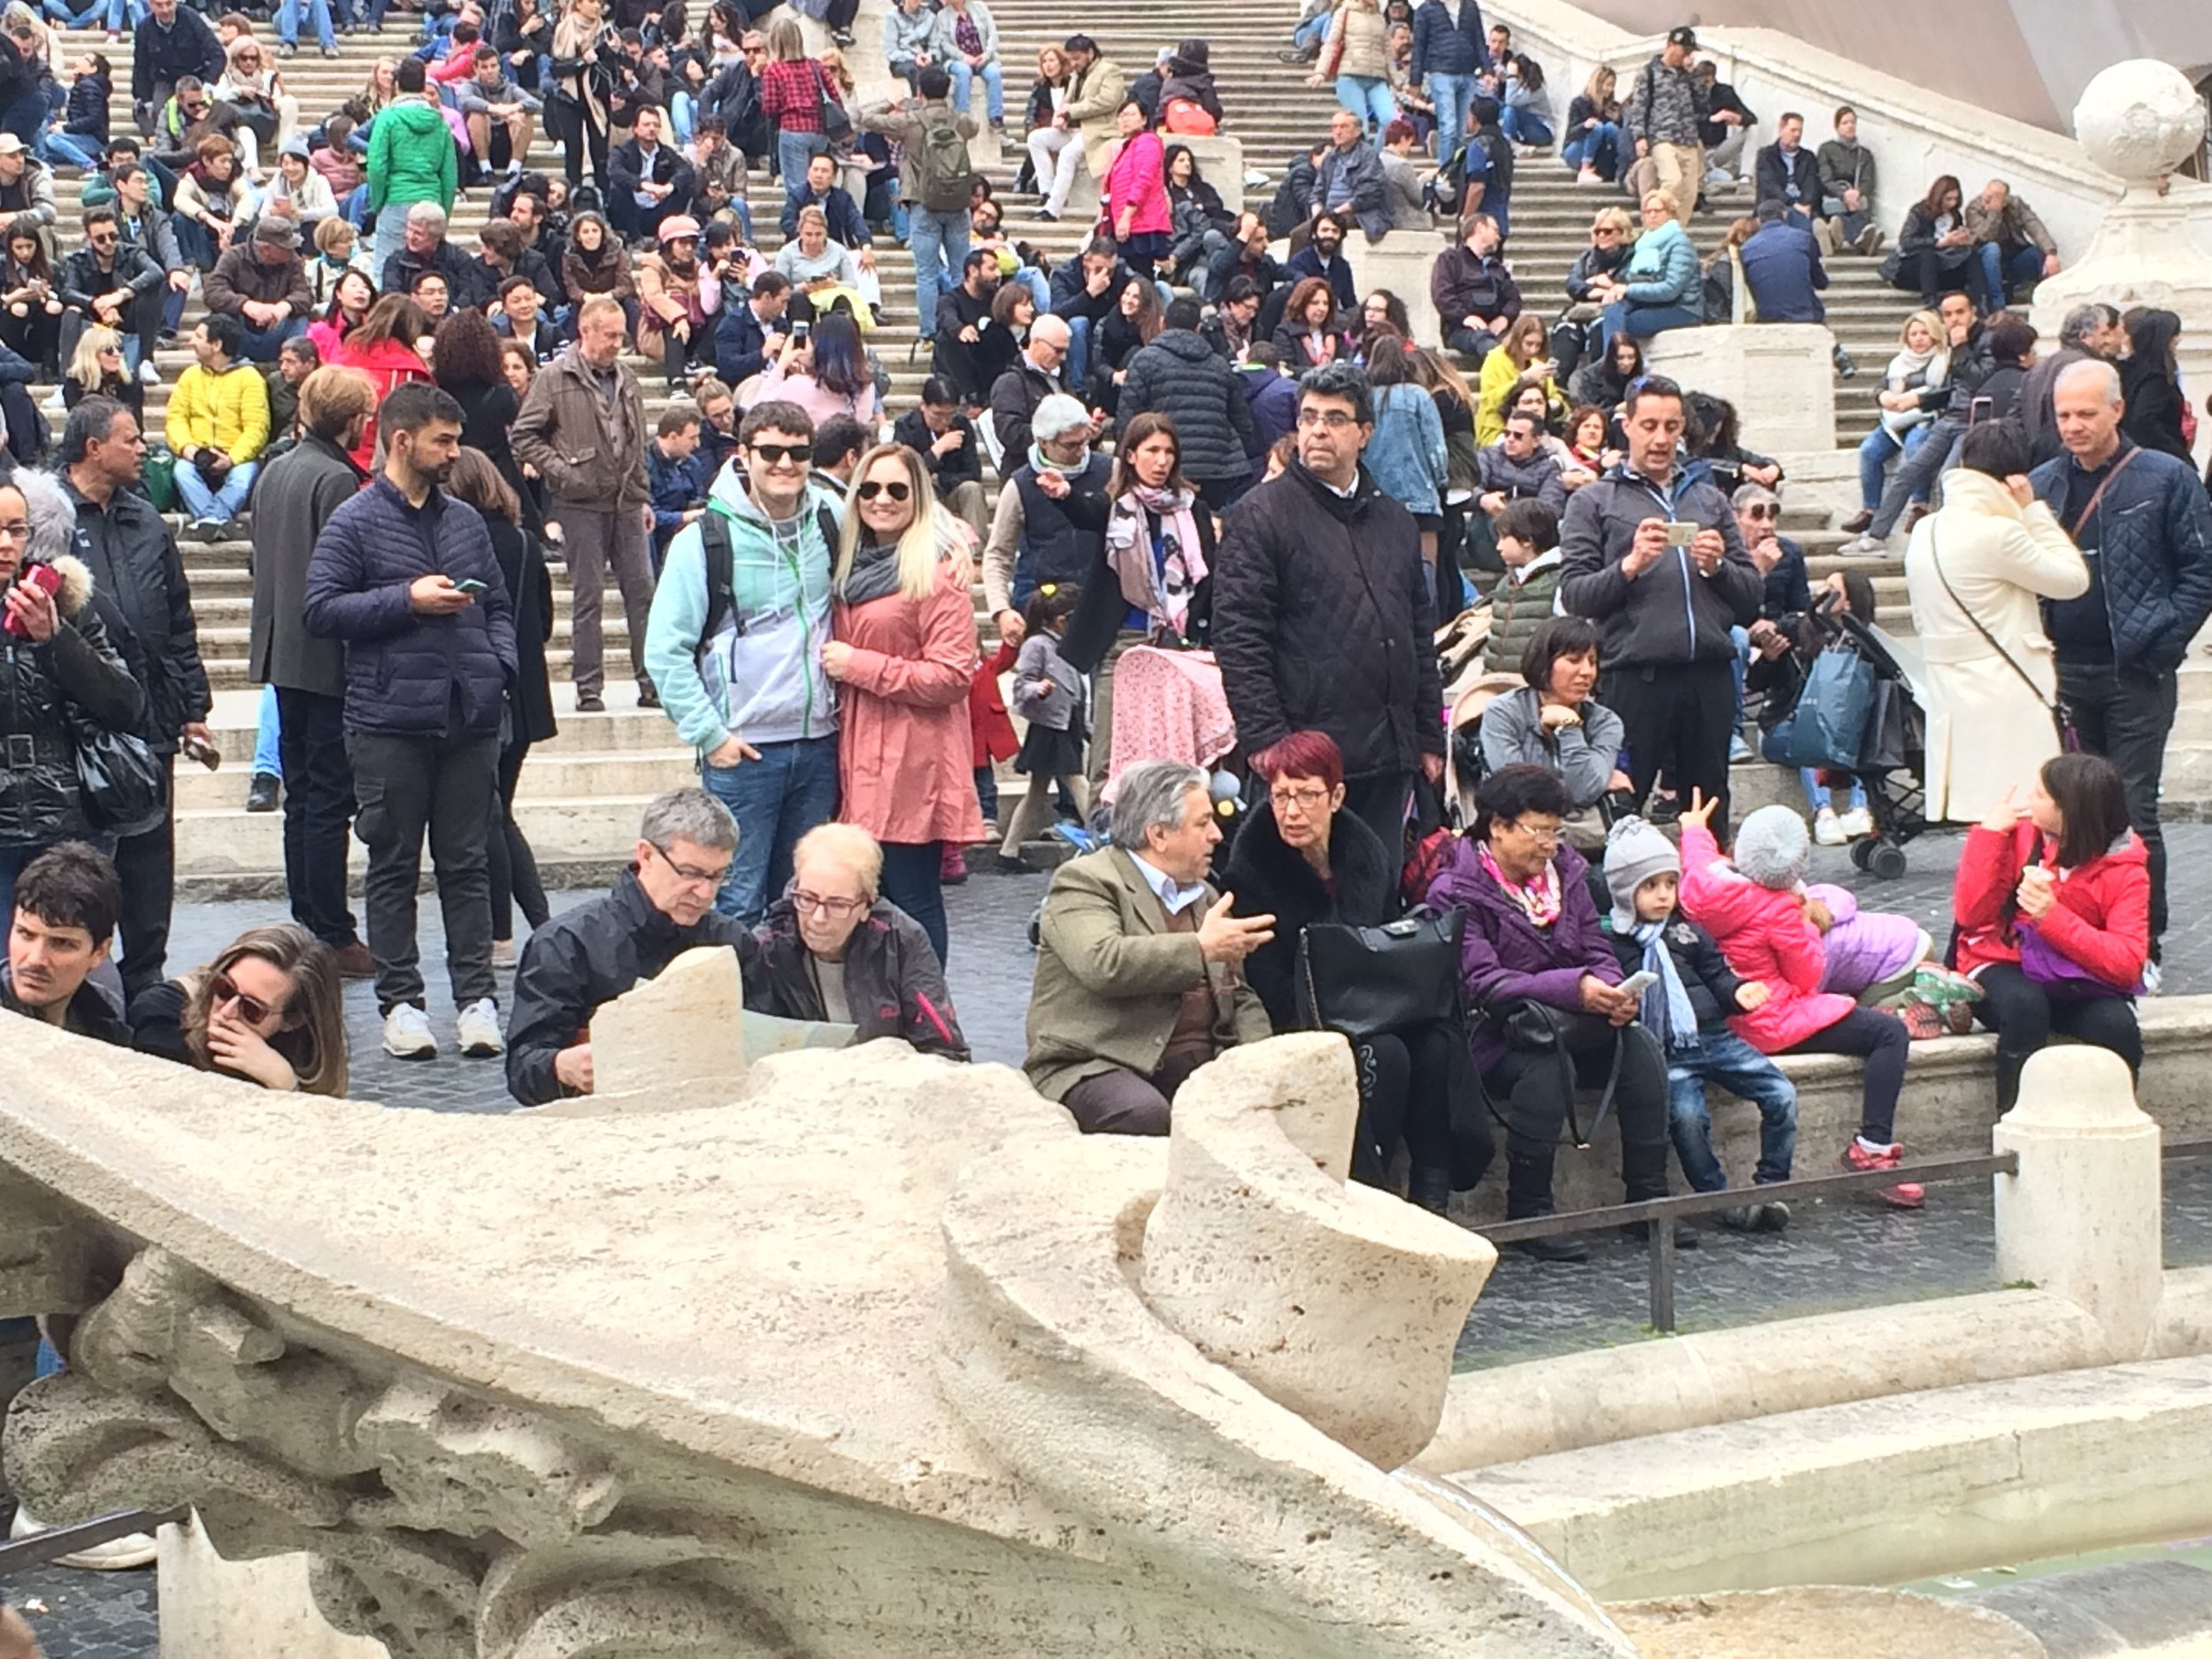 In the crowd at the Spanish Steps